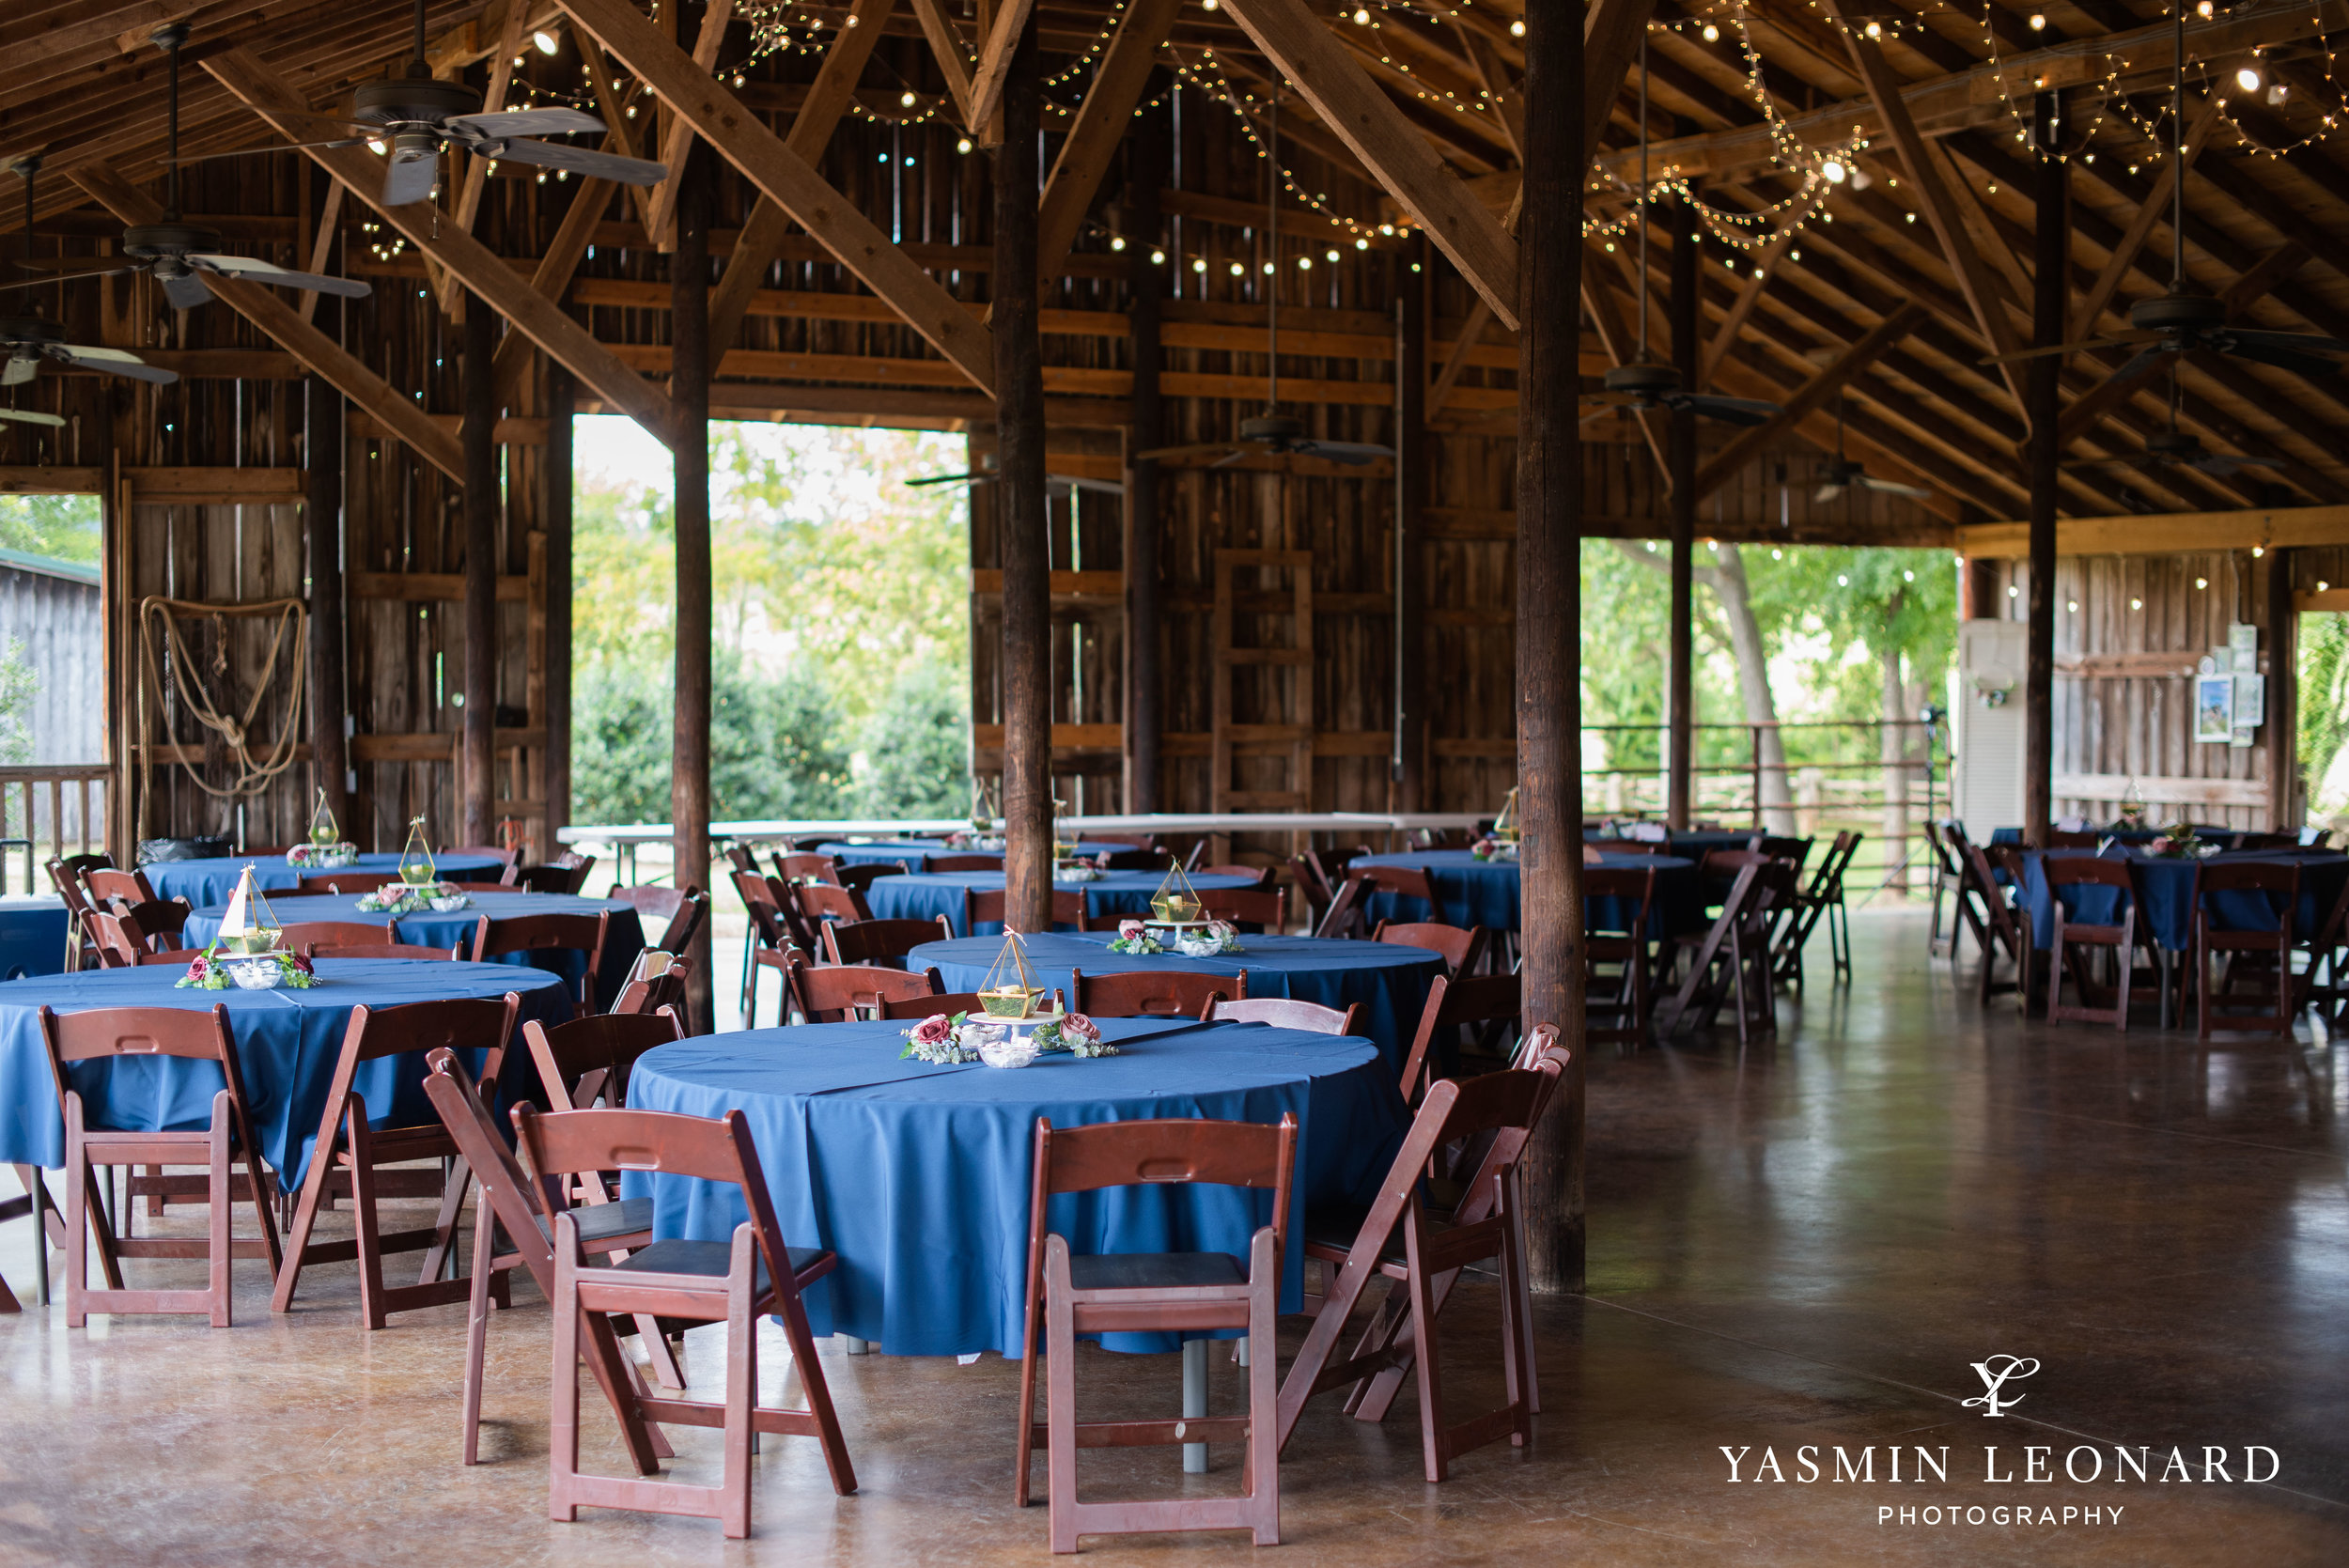 Hannah and David - l'abri at Linwood - NC Barn Weddings - Guys and Girls on Bride's Side - How to incorporate guys with bridesmaids - navy fall wedding - high point photographer - nc wedding venues - triad weddings-5.jpg